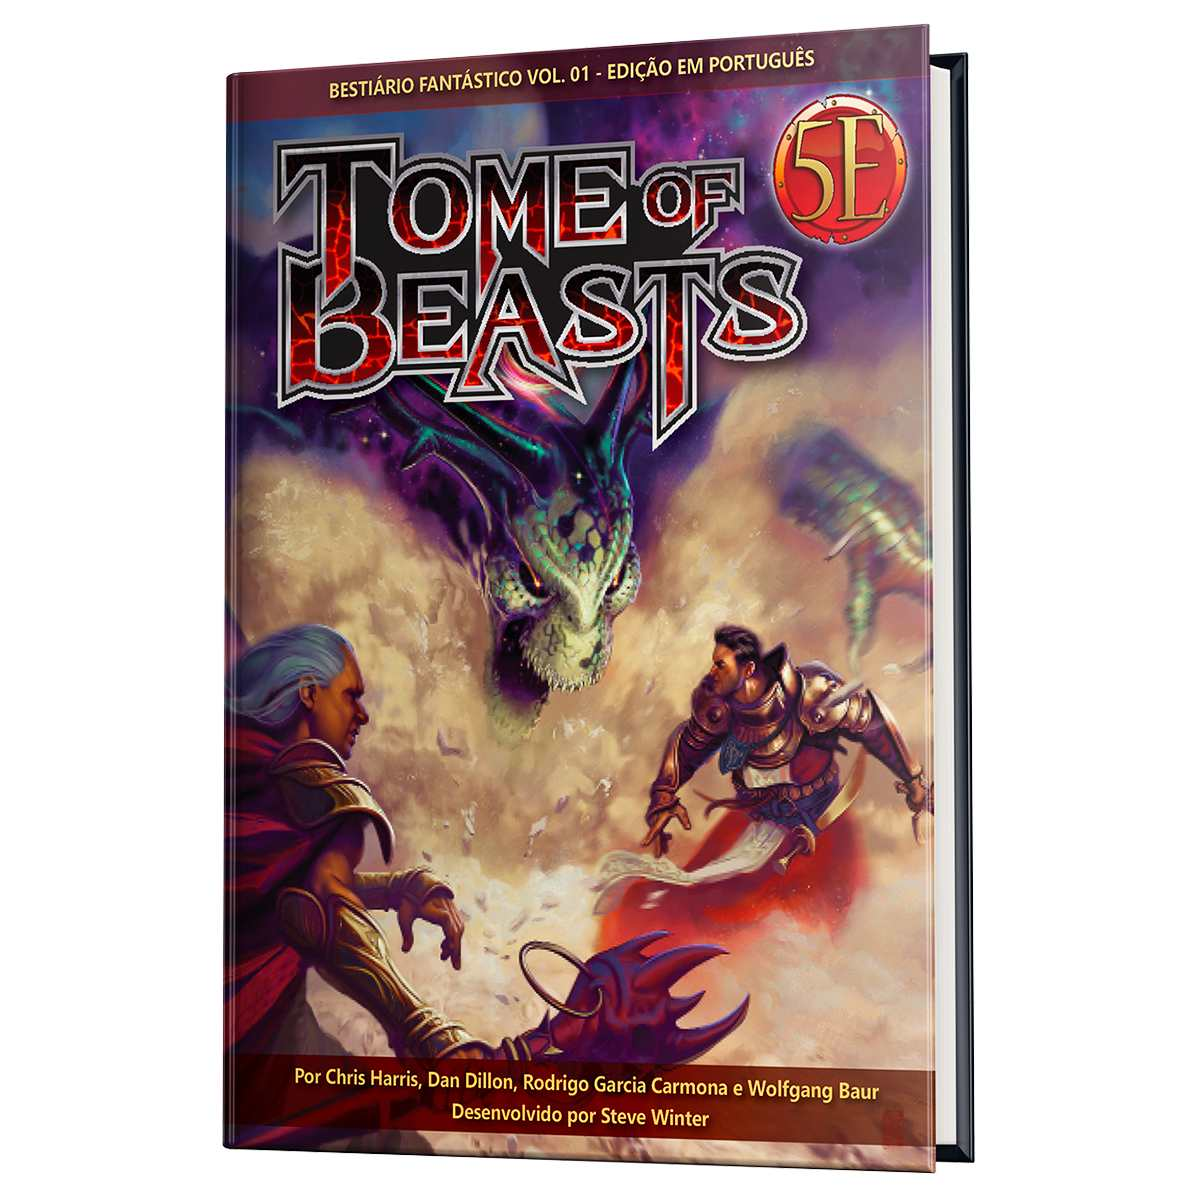 Dungeon Dragons Livro Tome Of Beasts: Bestiário Fantástico Vol 1